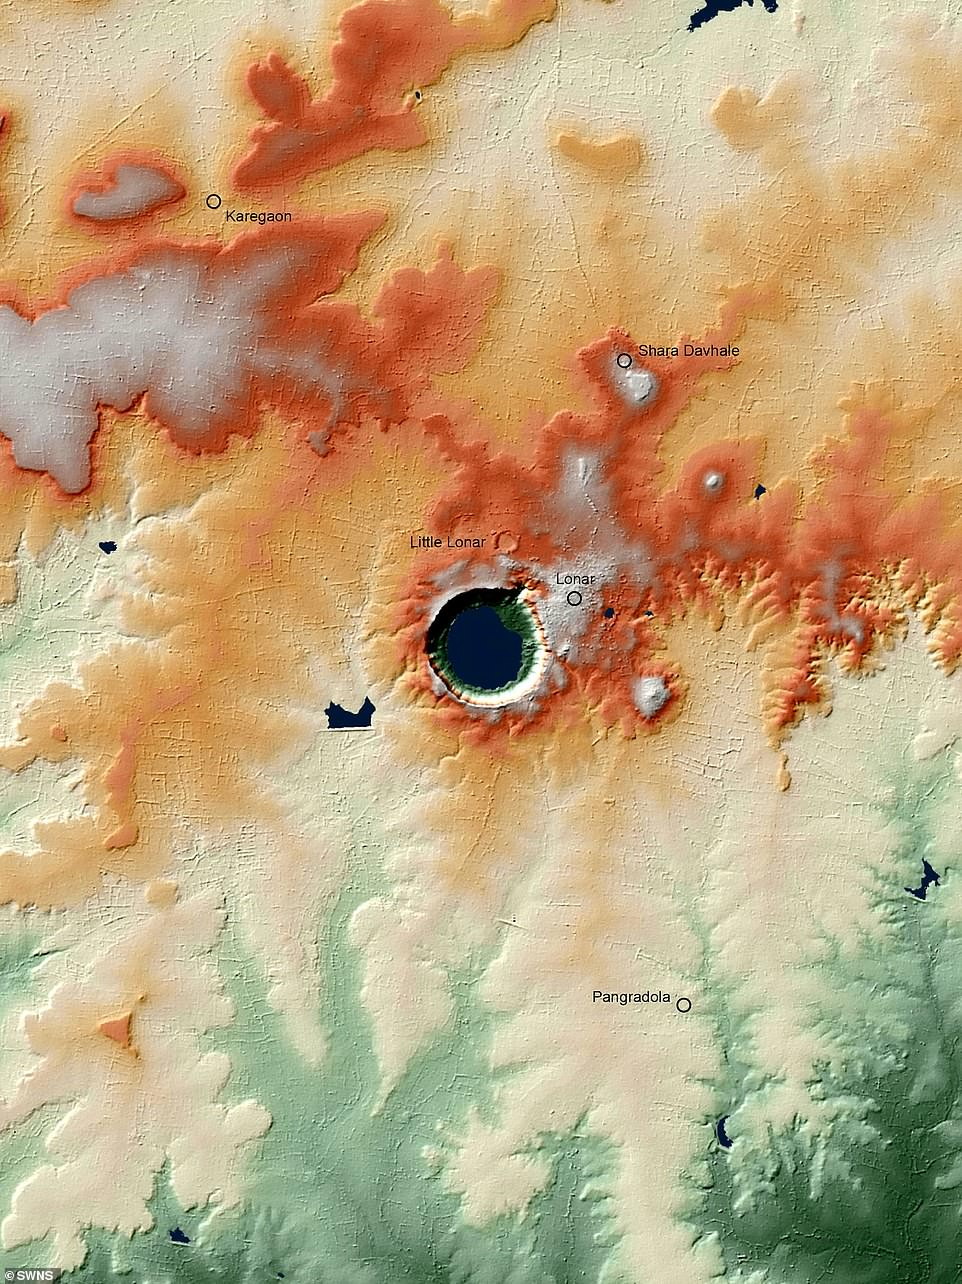 Eye-catching images show the world's first atlas of craters that can be found around the world such as Lonar in India (pictured)